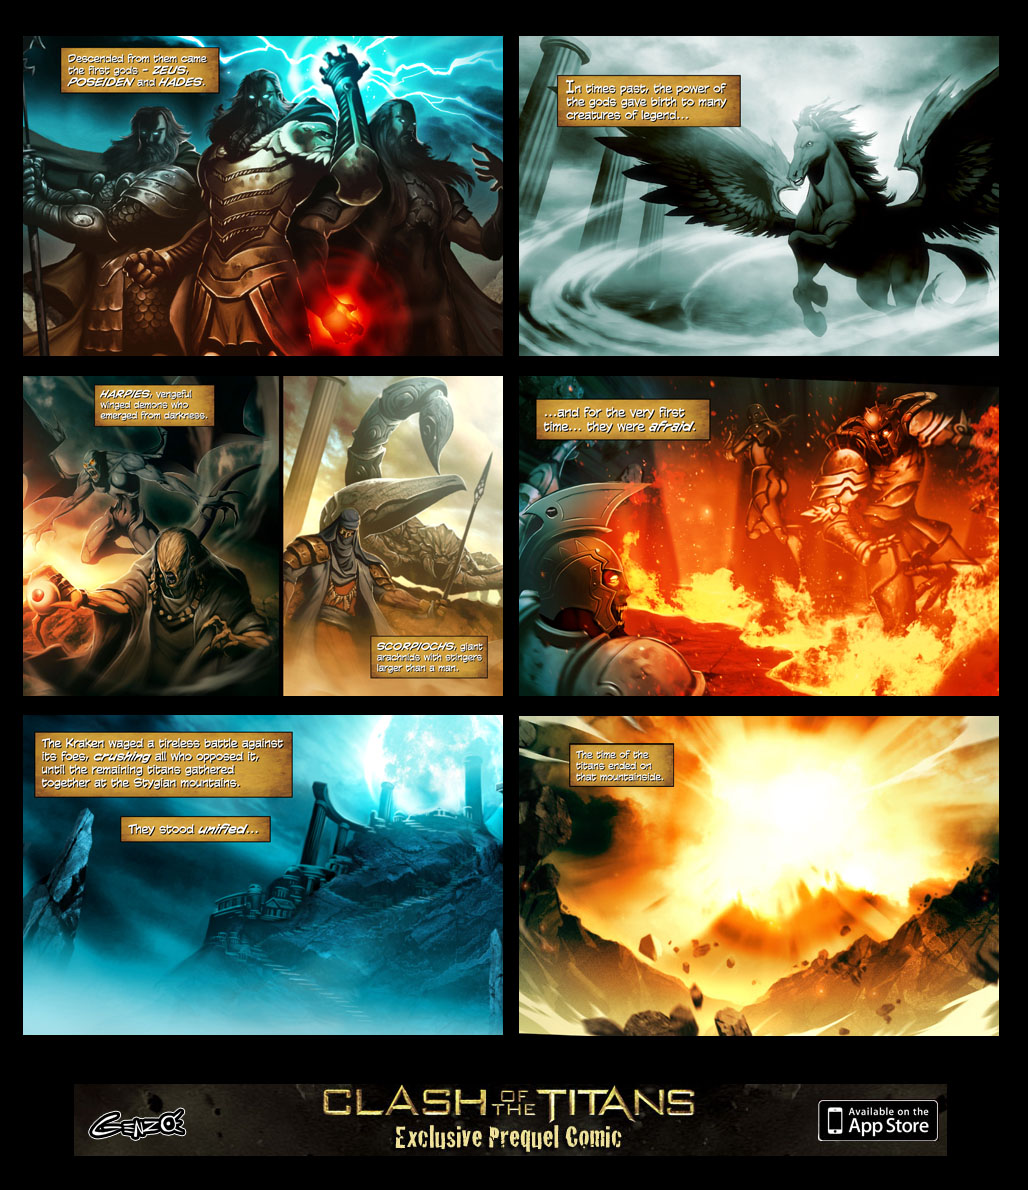 Clash of the titans preview by GENZOMAN